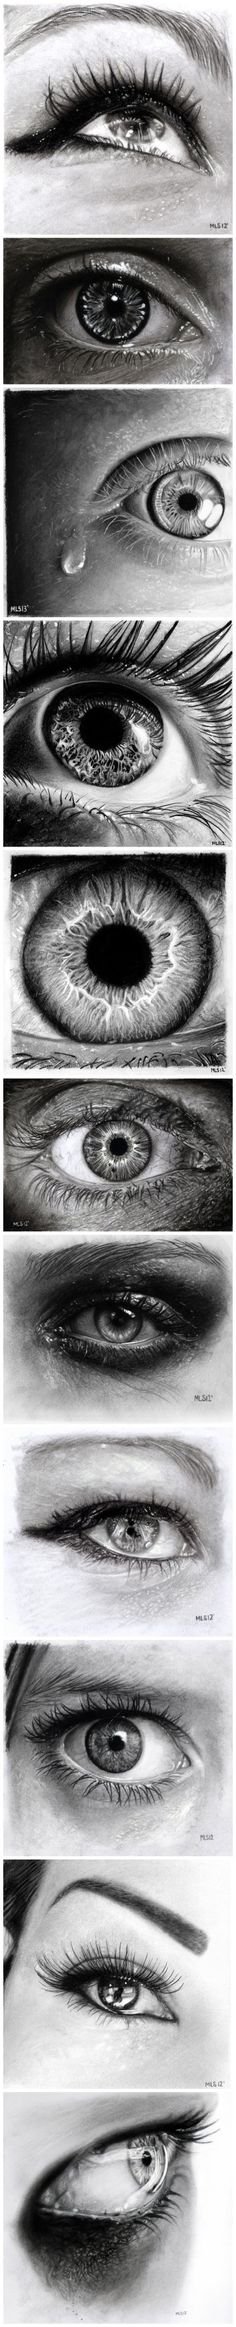 amazing eye drawings see: Art Ed Central